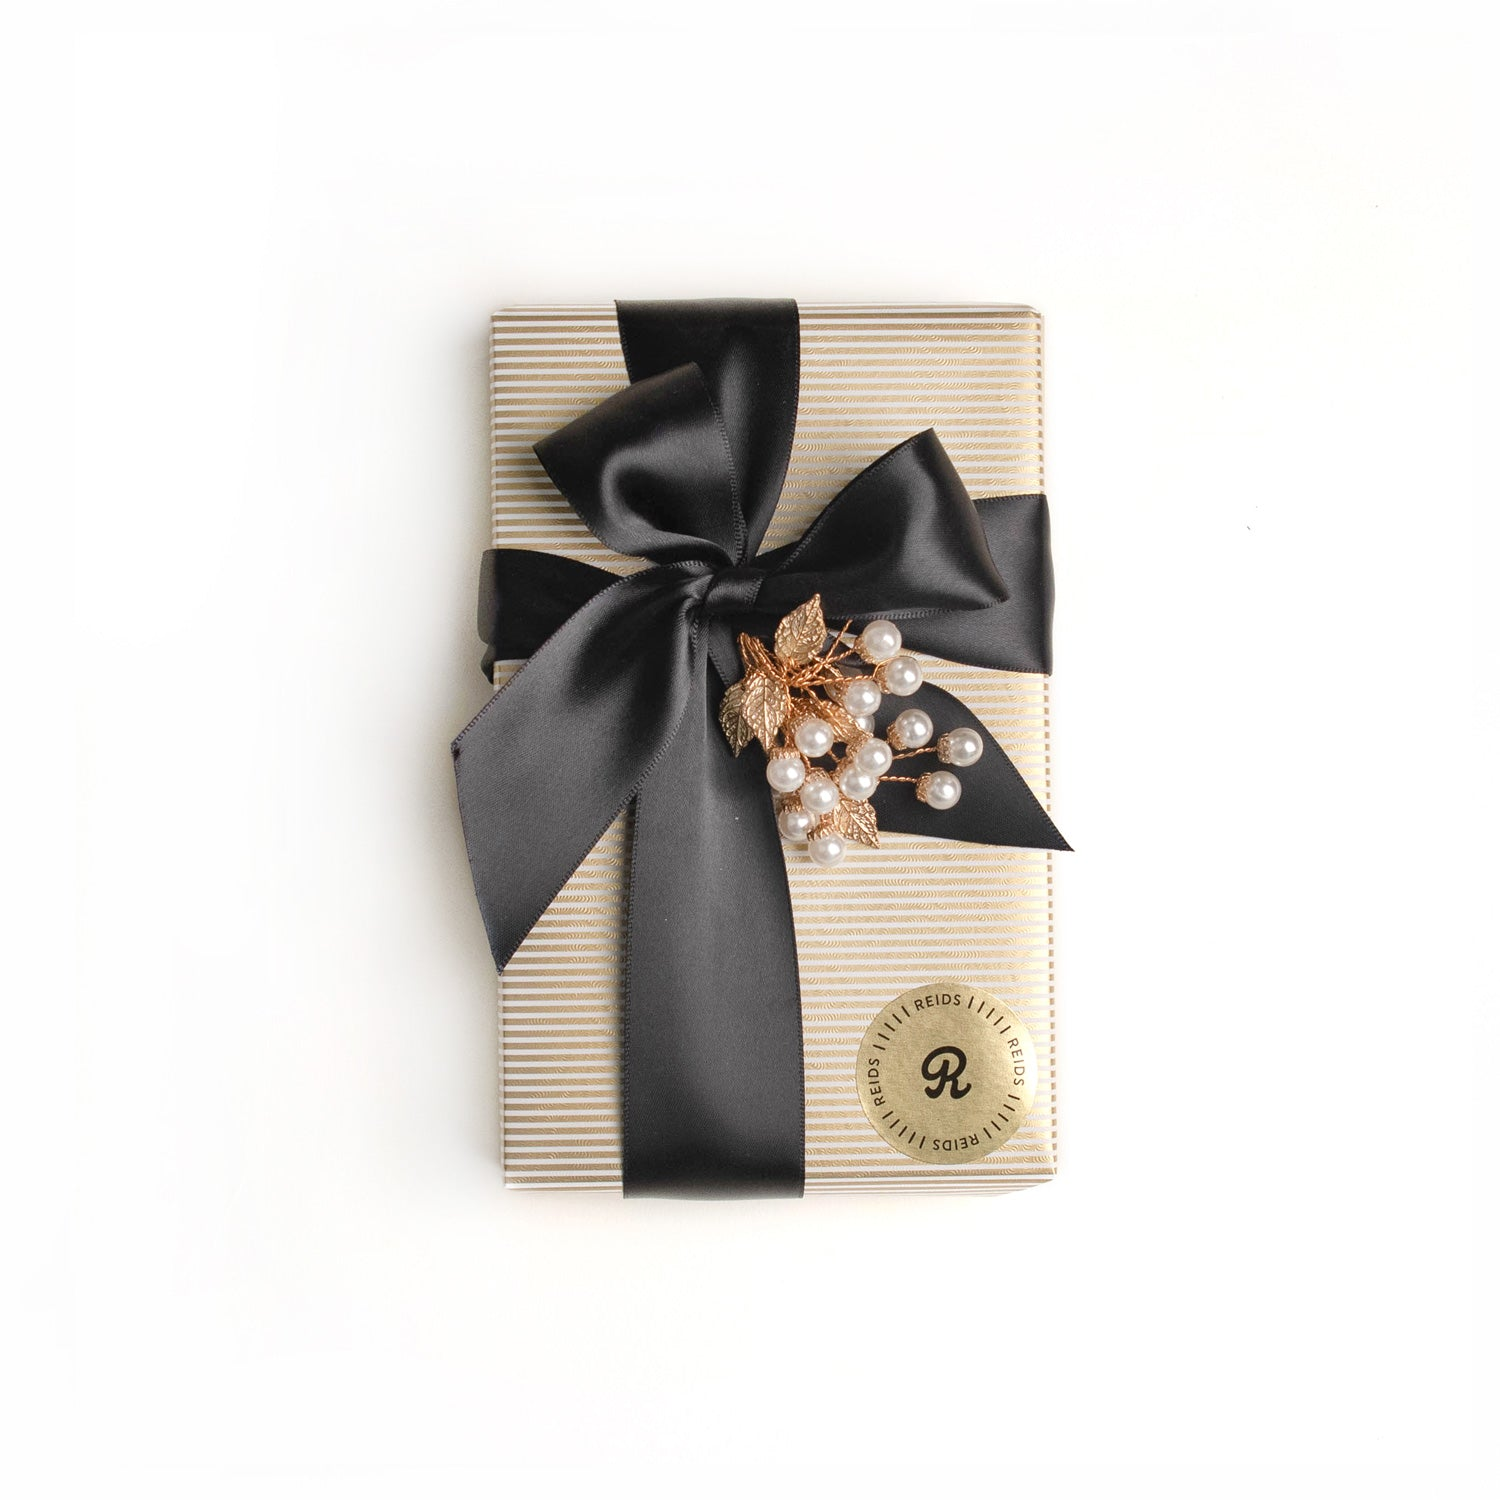 1/2 lb fancy wrapped box. Gold, and white pin-stripped wrapping paper. Tied with a black satin ribbon and white decorative piece